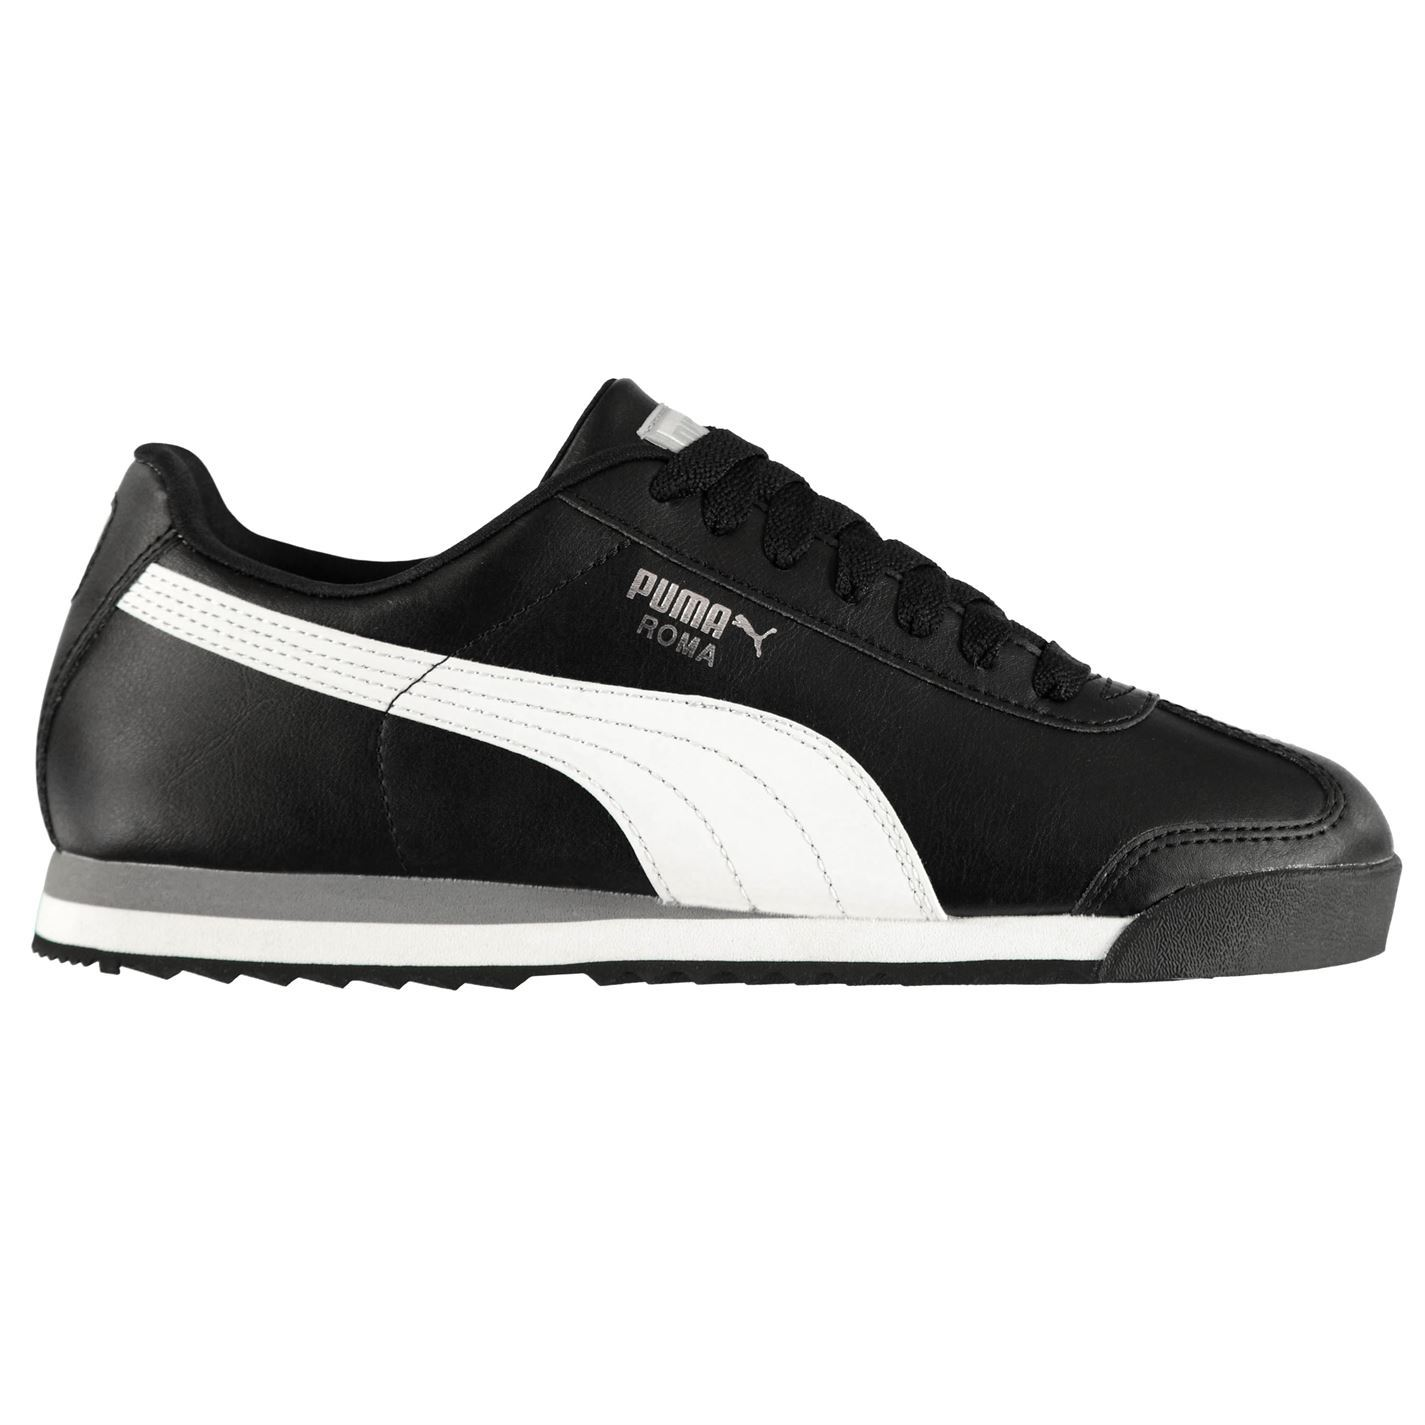 Puma-Roma-Basic-Trainers-Mens-Athleisure-Footwear-Shoes-Sneakers thumbnail 9